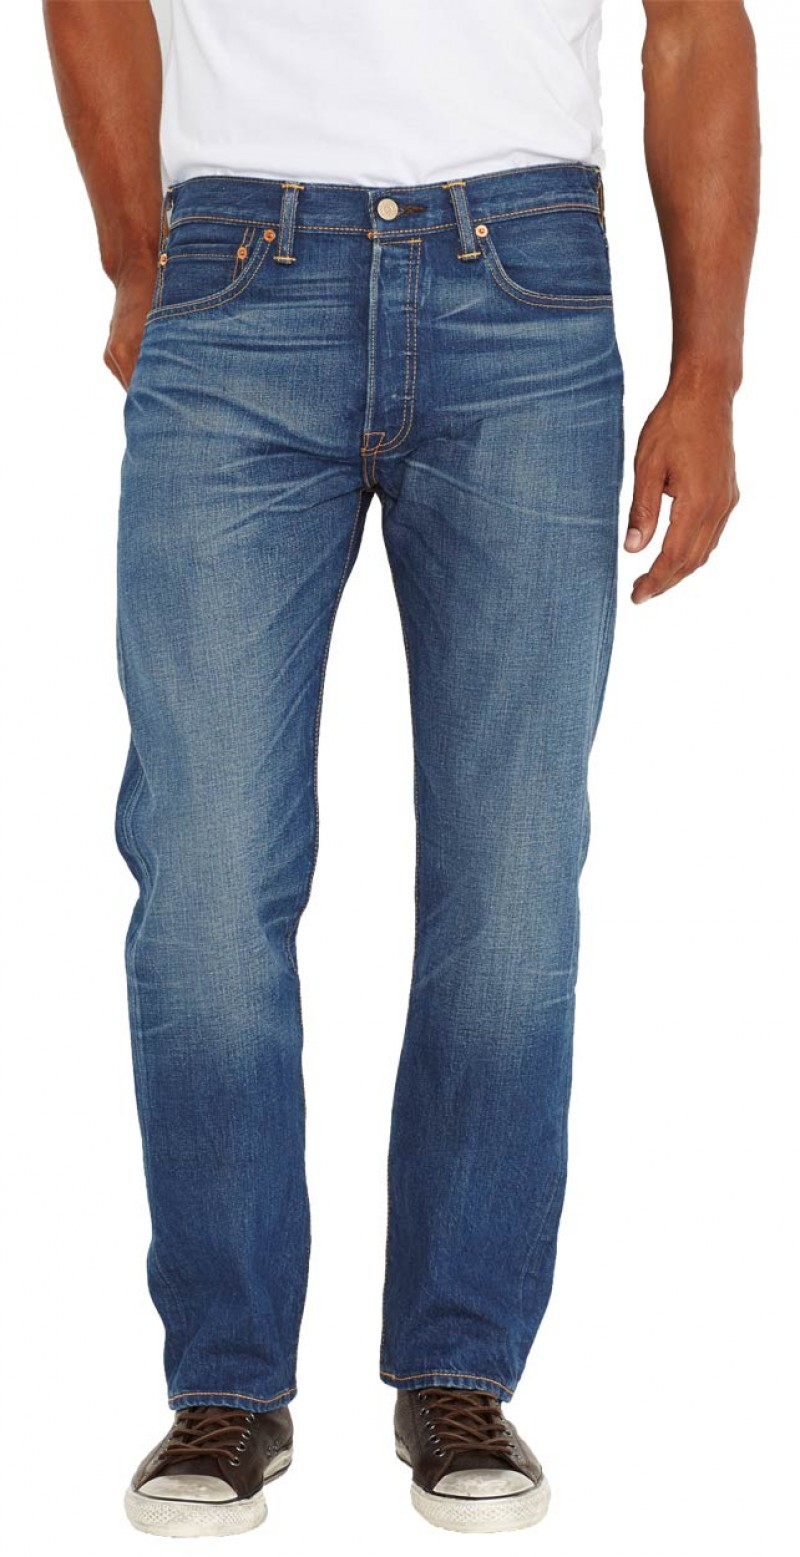 Levis 501 Jeans - Original Fit - Leary